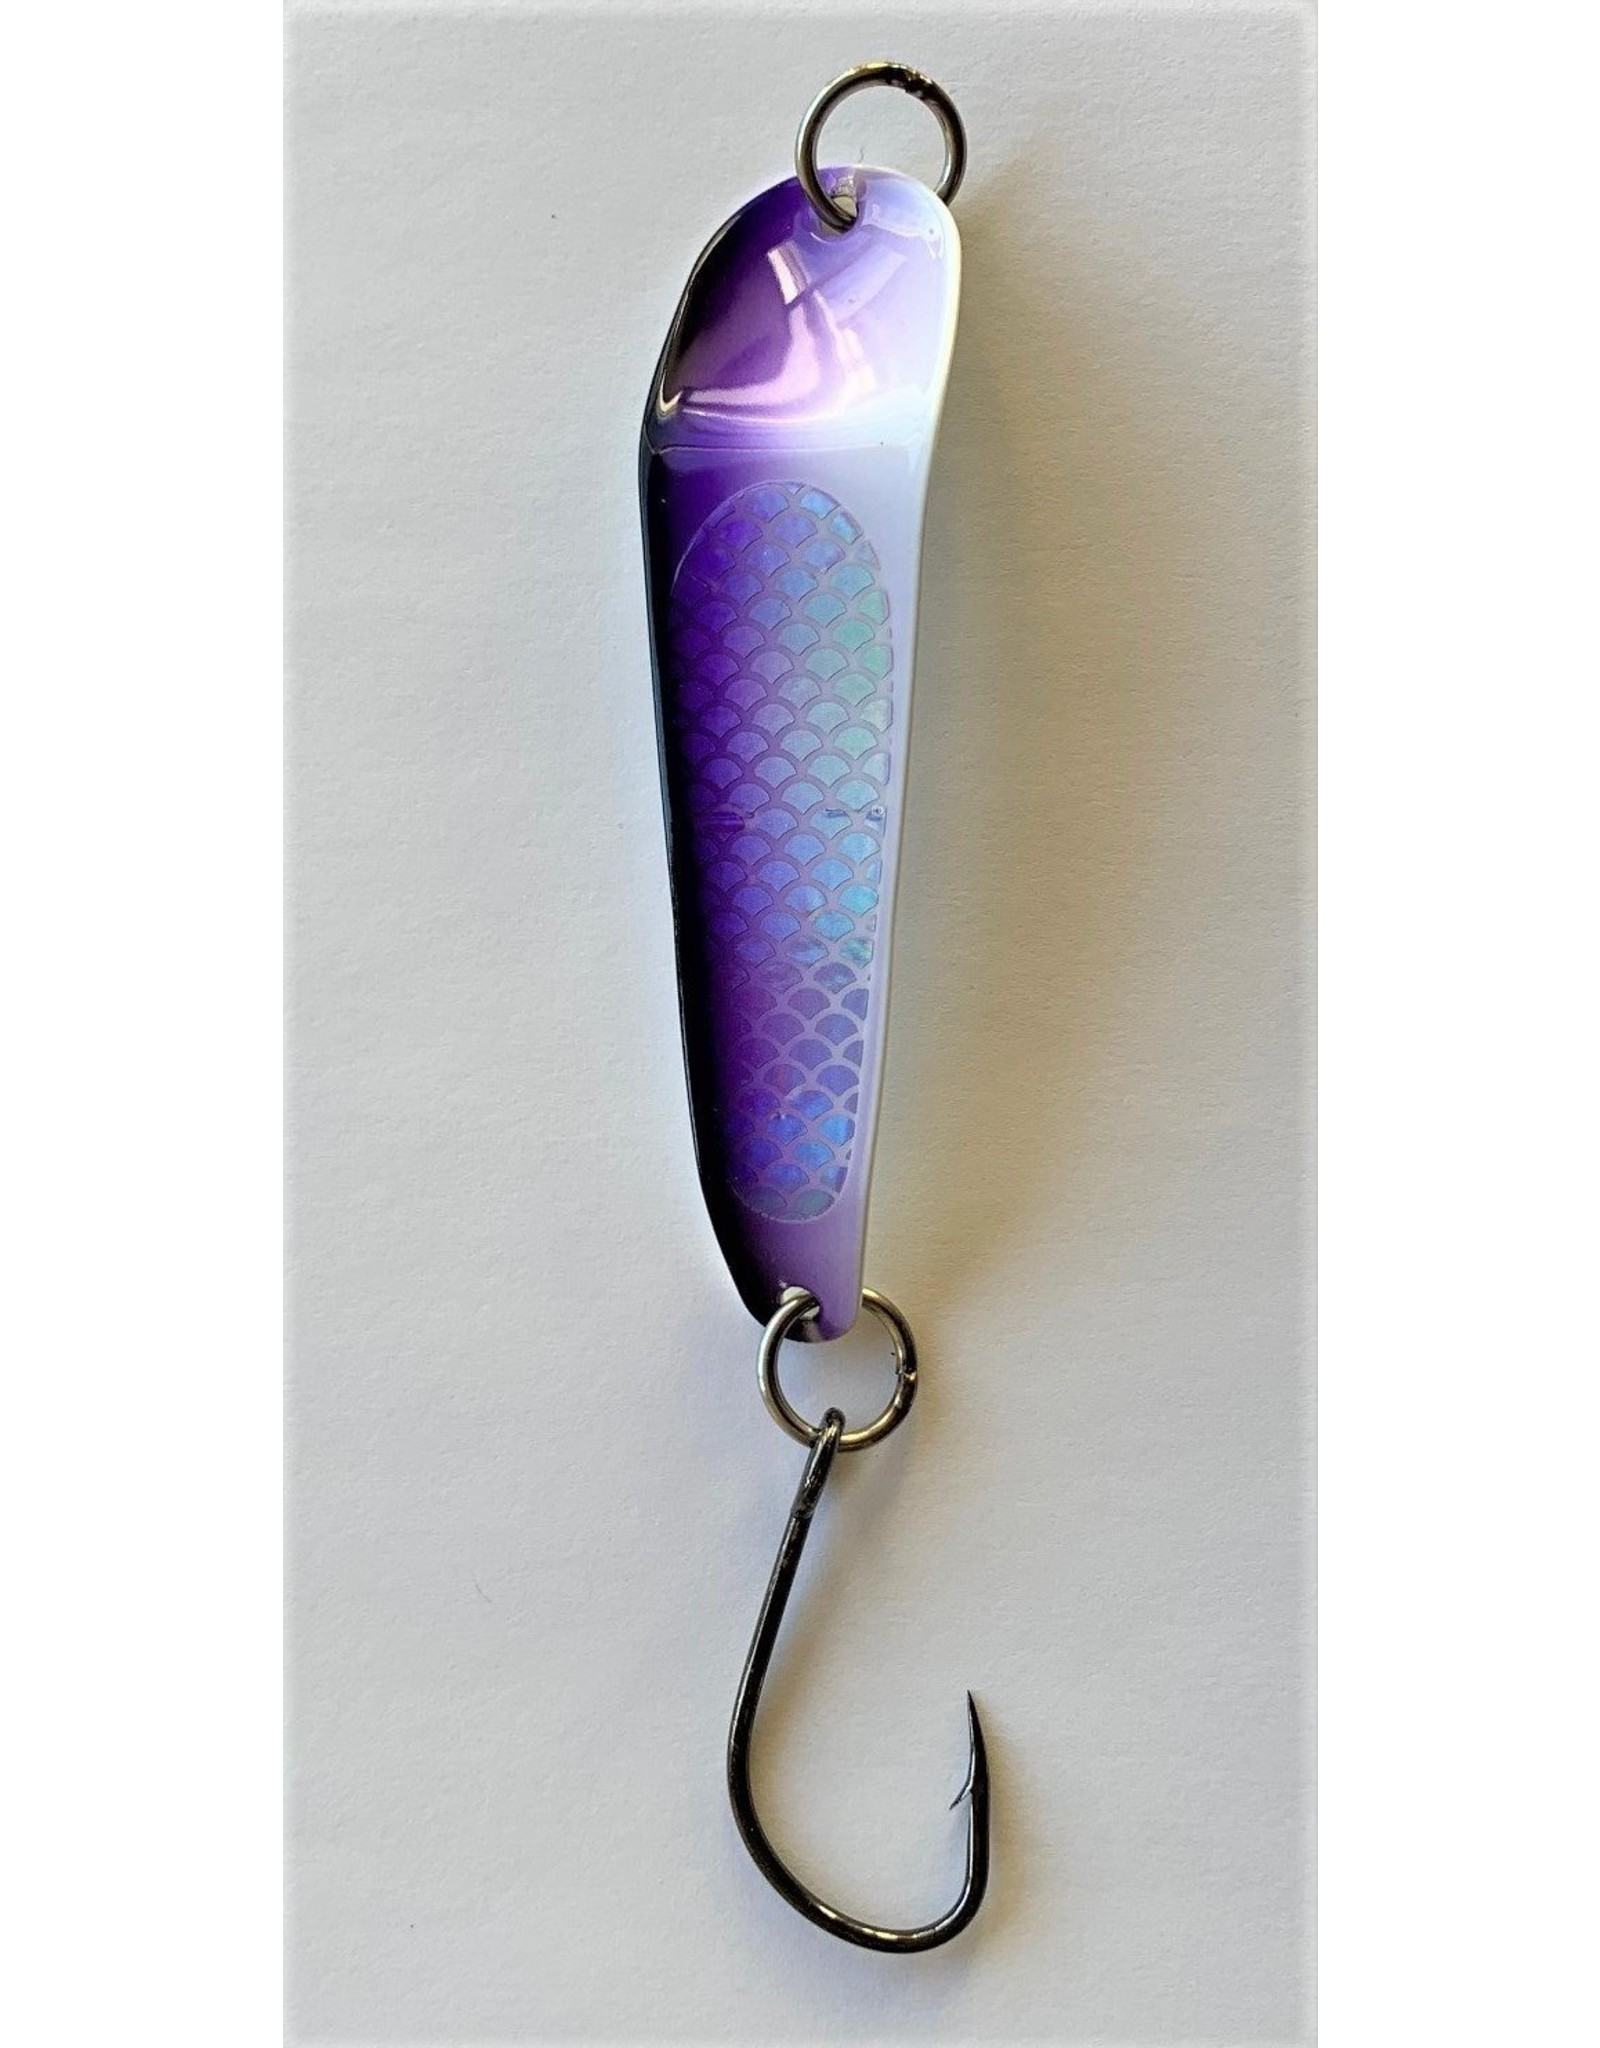 SPIRIT LURES LOONY SPOON - SIZE #3